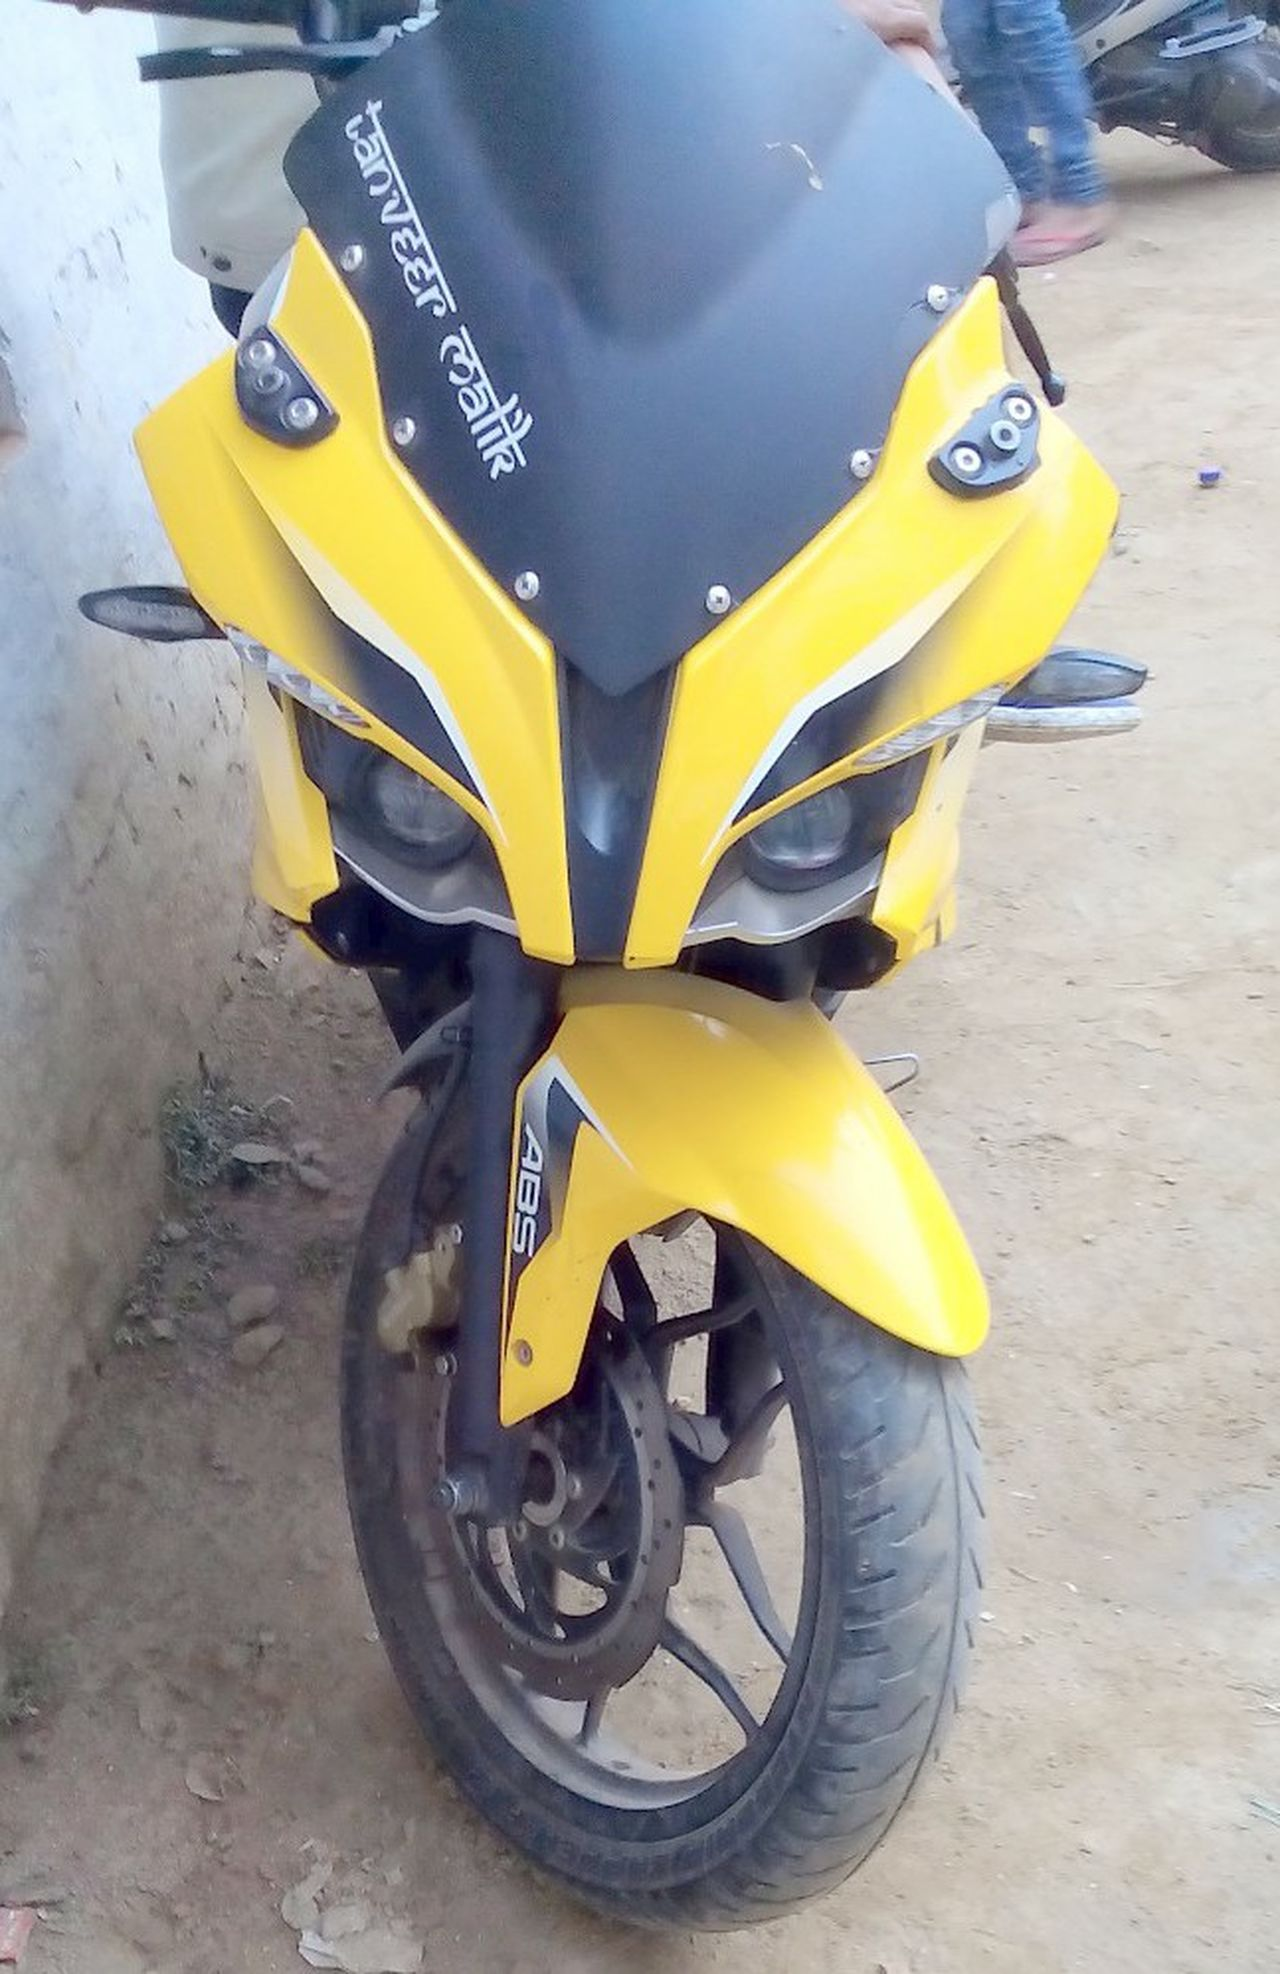 Bajaj my pulsar a month old my girlfriend